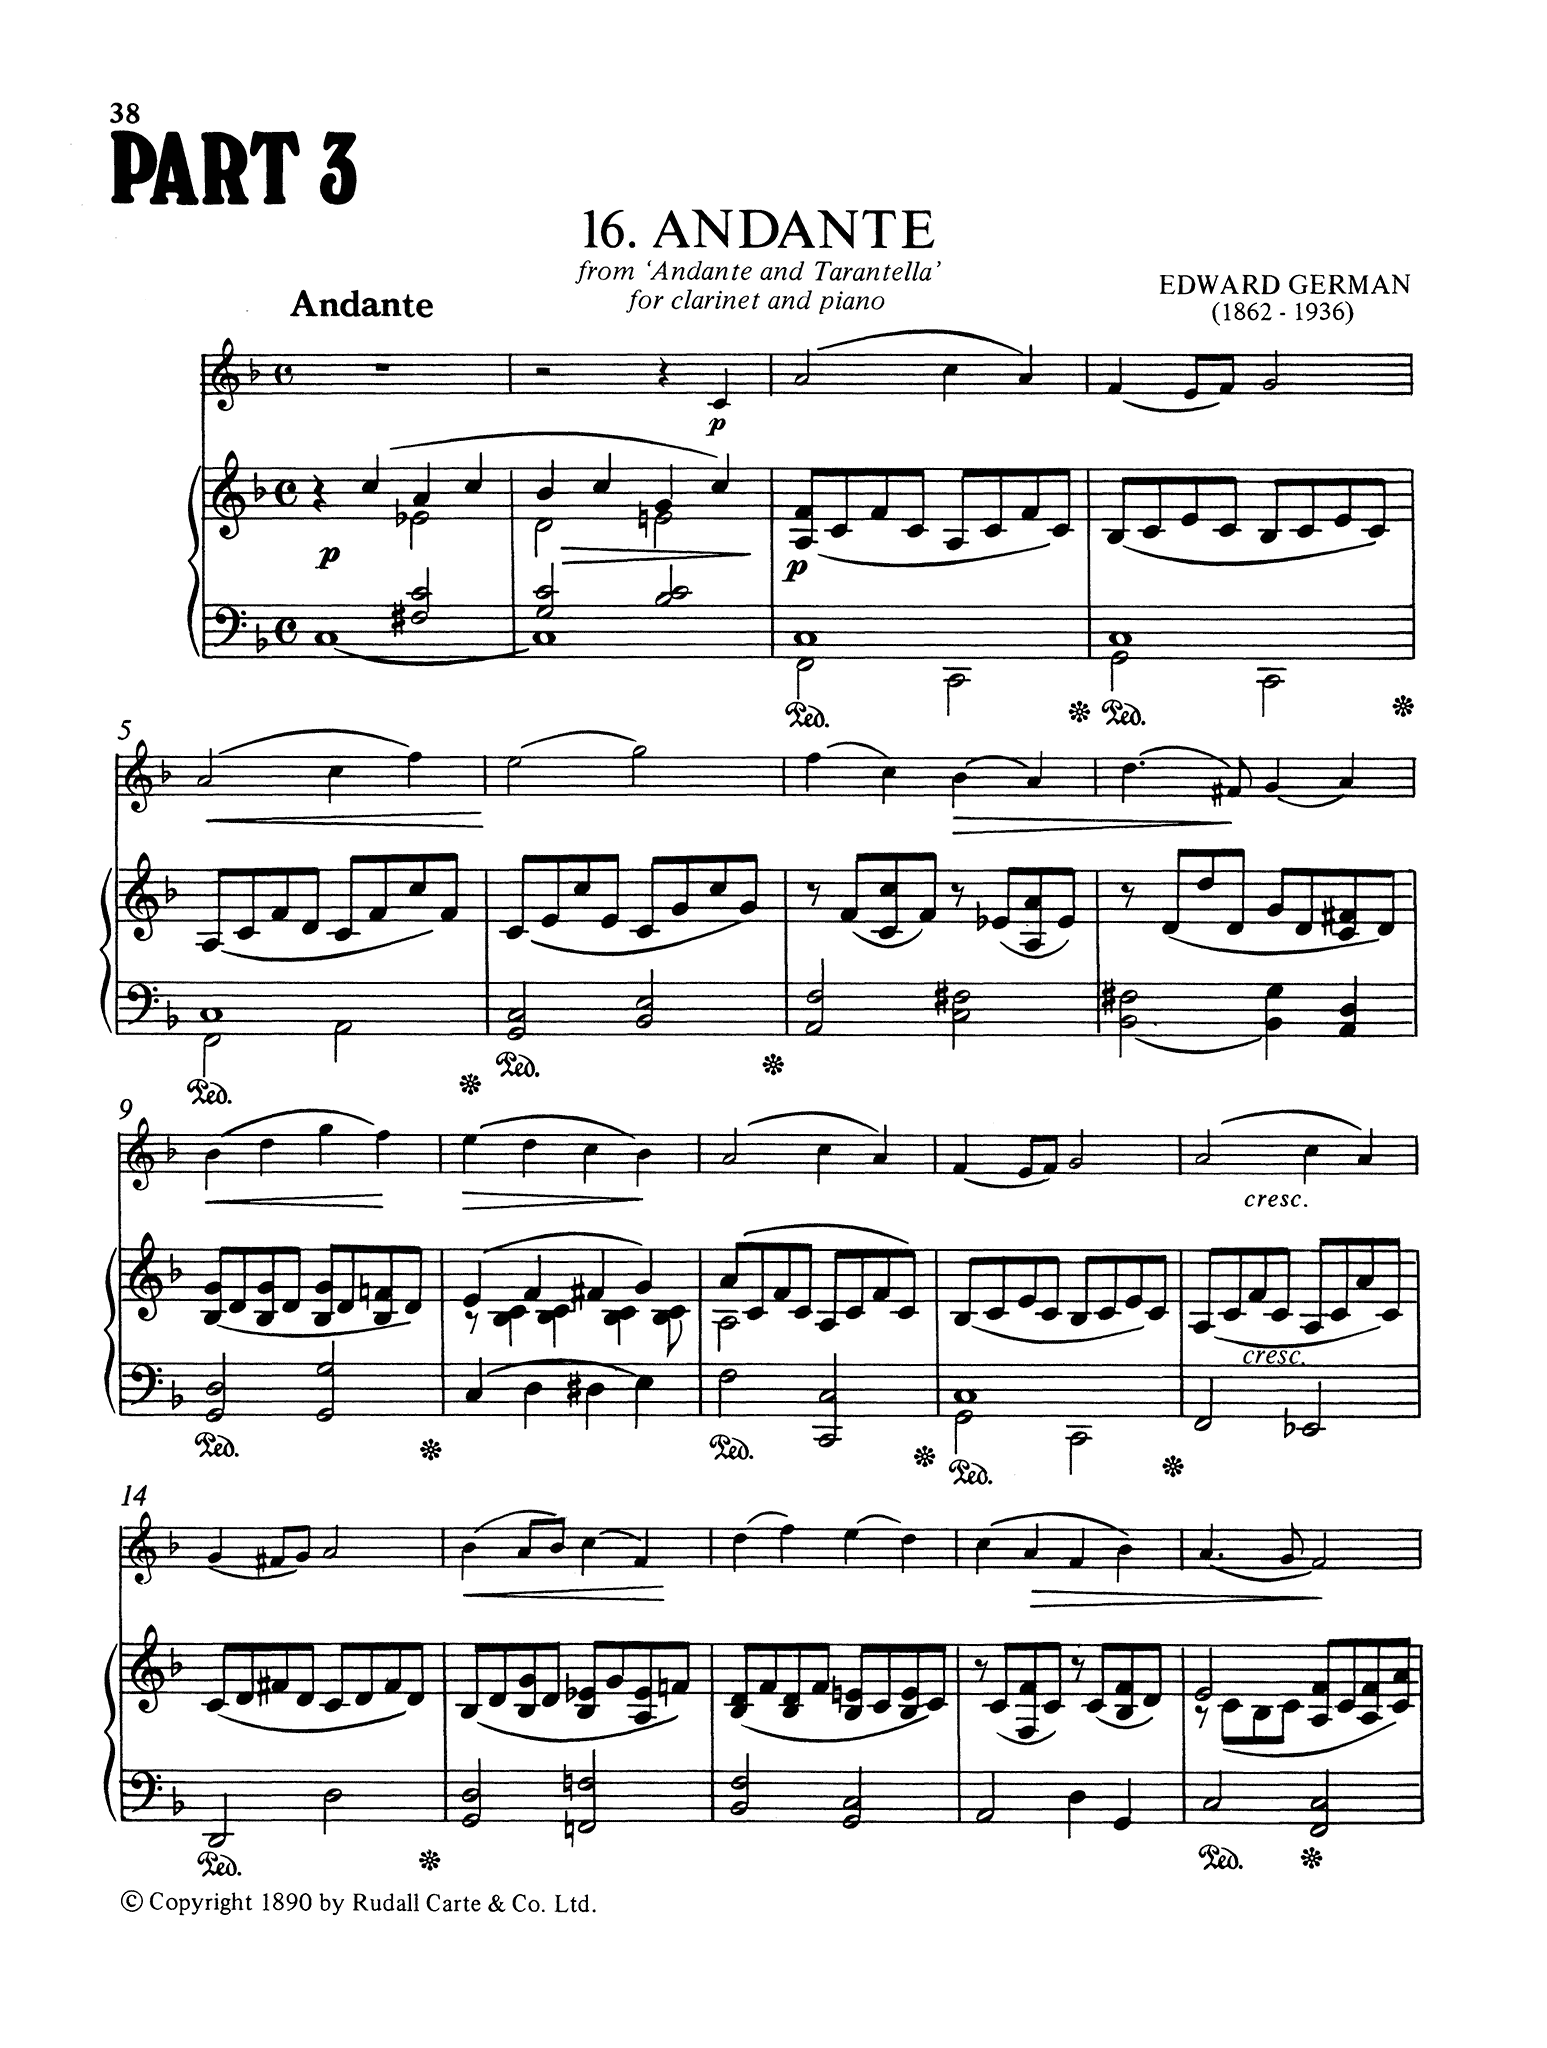 Edward German Andante clarinet & piano score